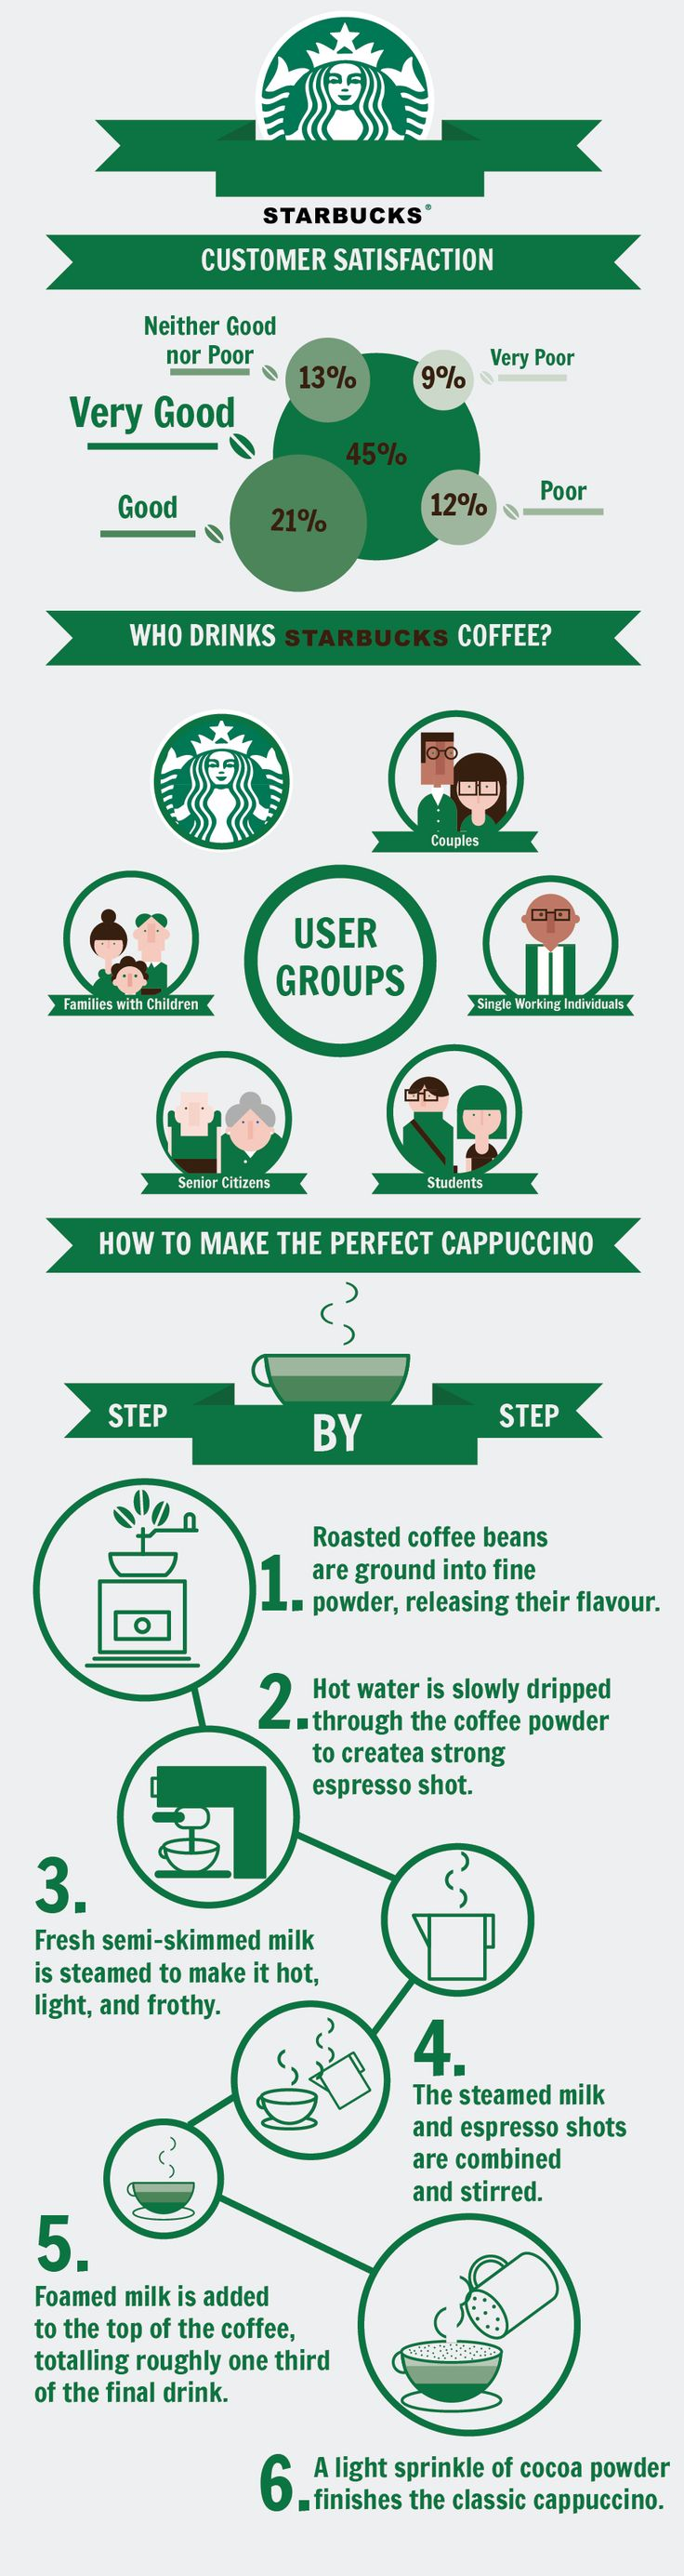 Herbal hibiscus tea 55g dr bean australia - Infographic Design Exercise Using Starbucks S Brand And Colors The Information Depicted Is Just Filler